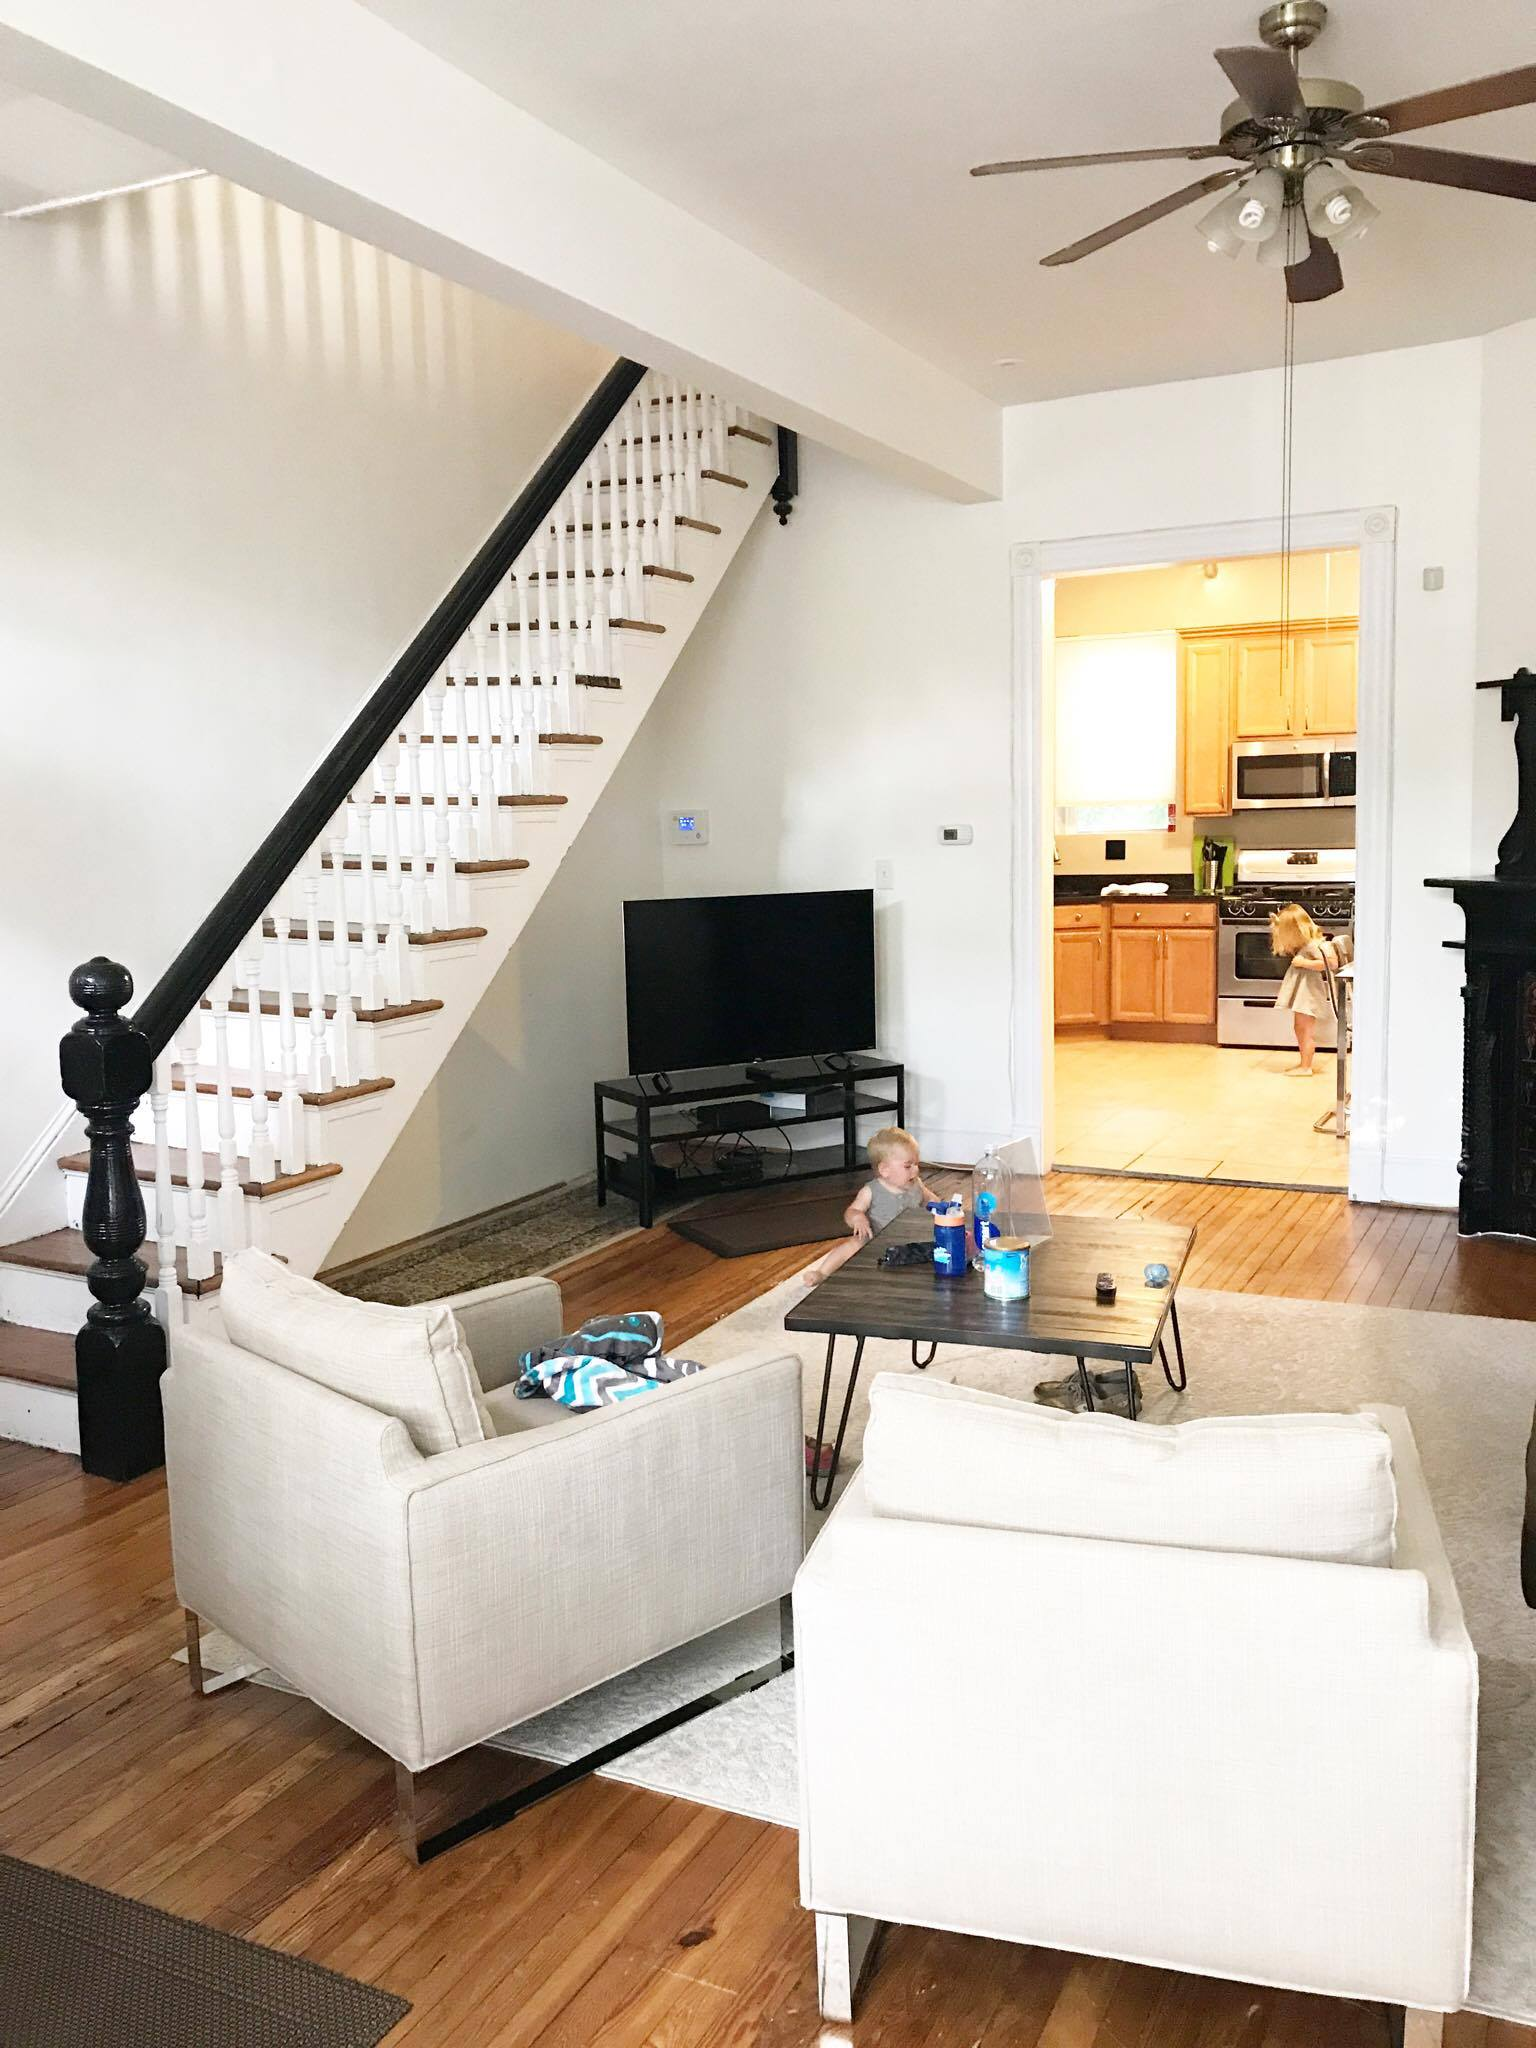 an airbnb in washington dc - 2 bedrooms, full kitchen for only $150 per night